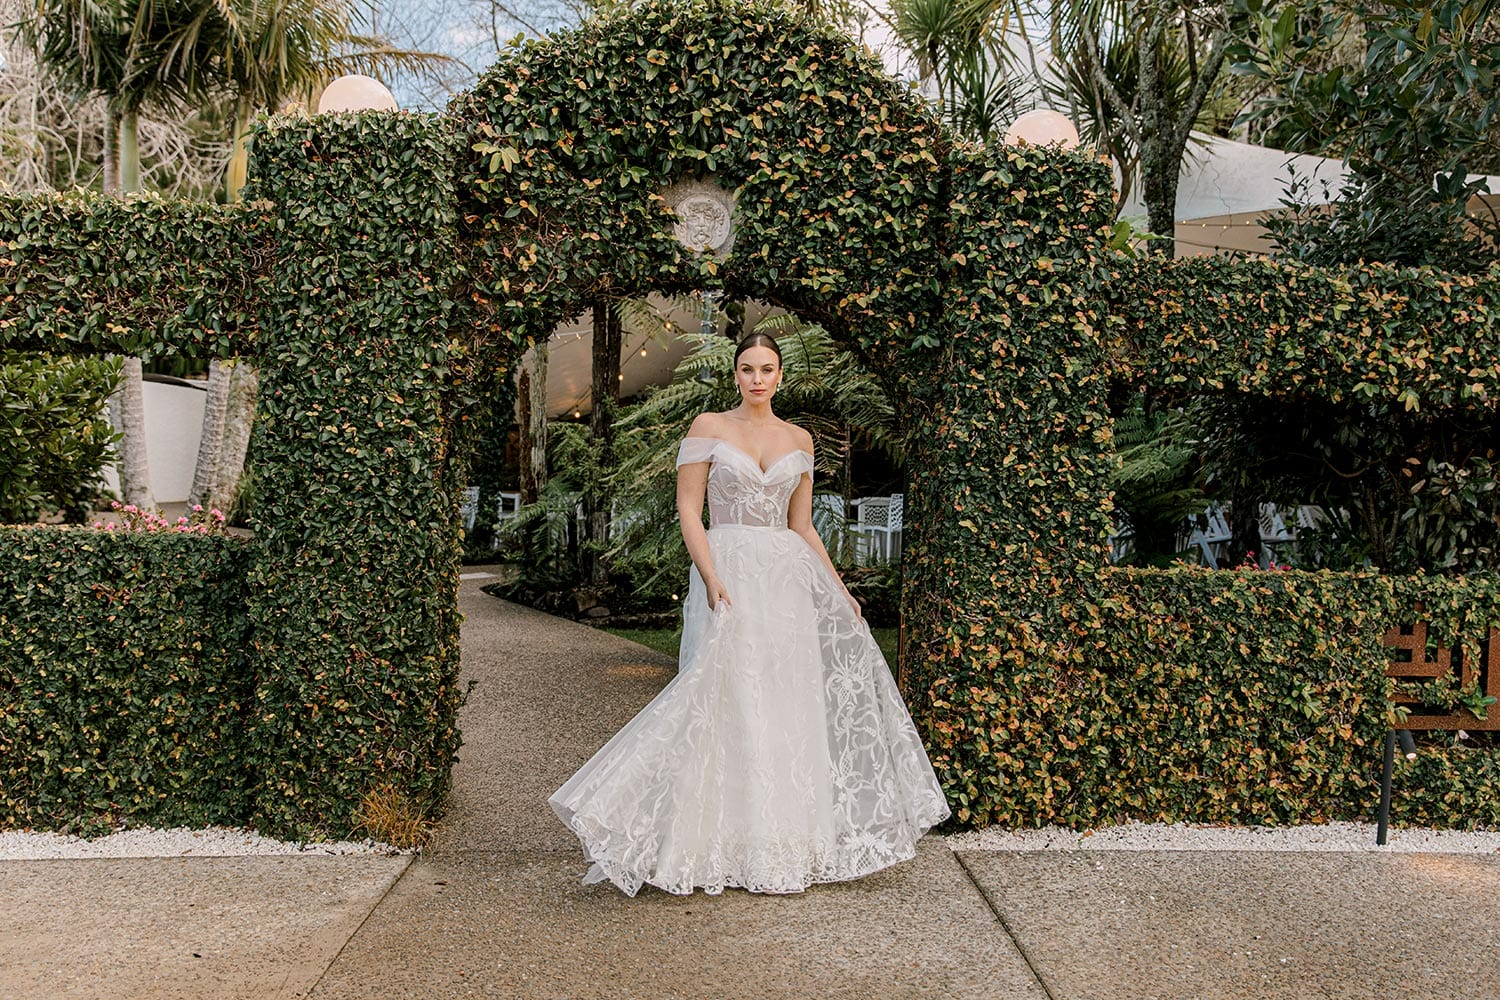 Zoe wedding dress by Vinka Design - a romantic & dreamy off-shoulder gown with a structured, boned bodice, a full lace & tulle skirt. Semi-sheer bodice with tulle off-shoulder detailing and satin belt. Worn in garden archway.